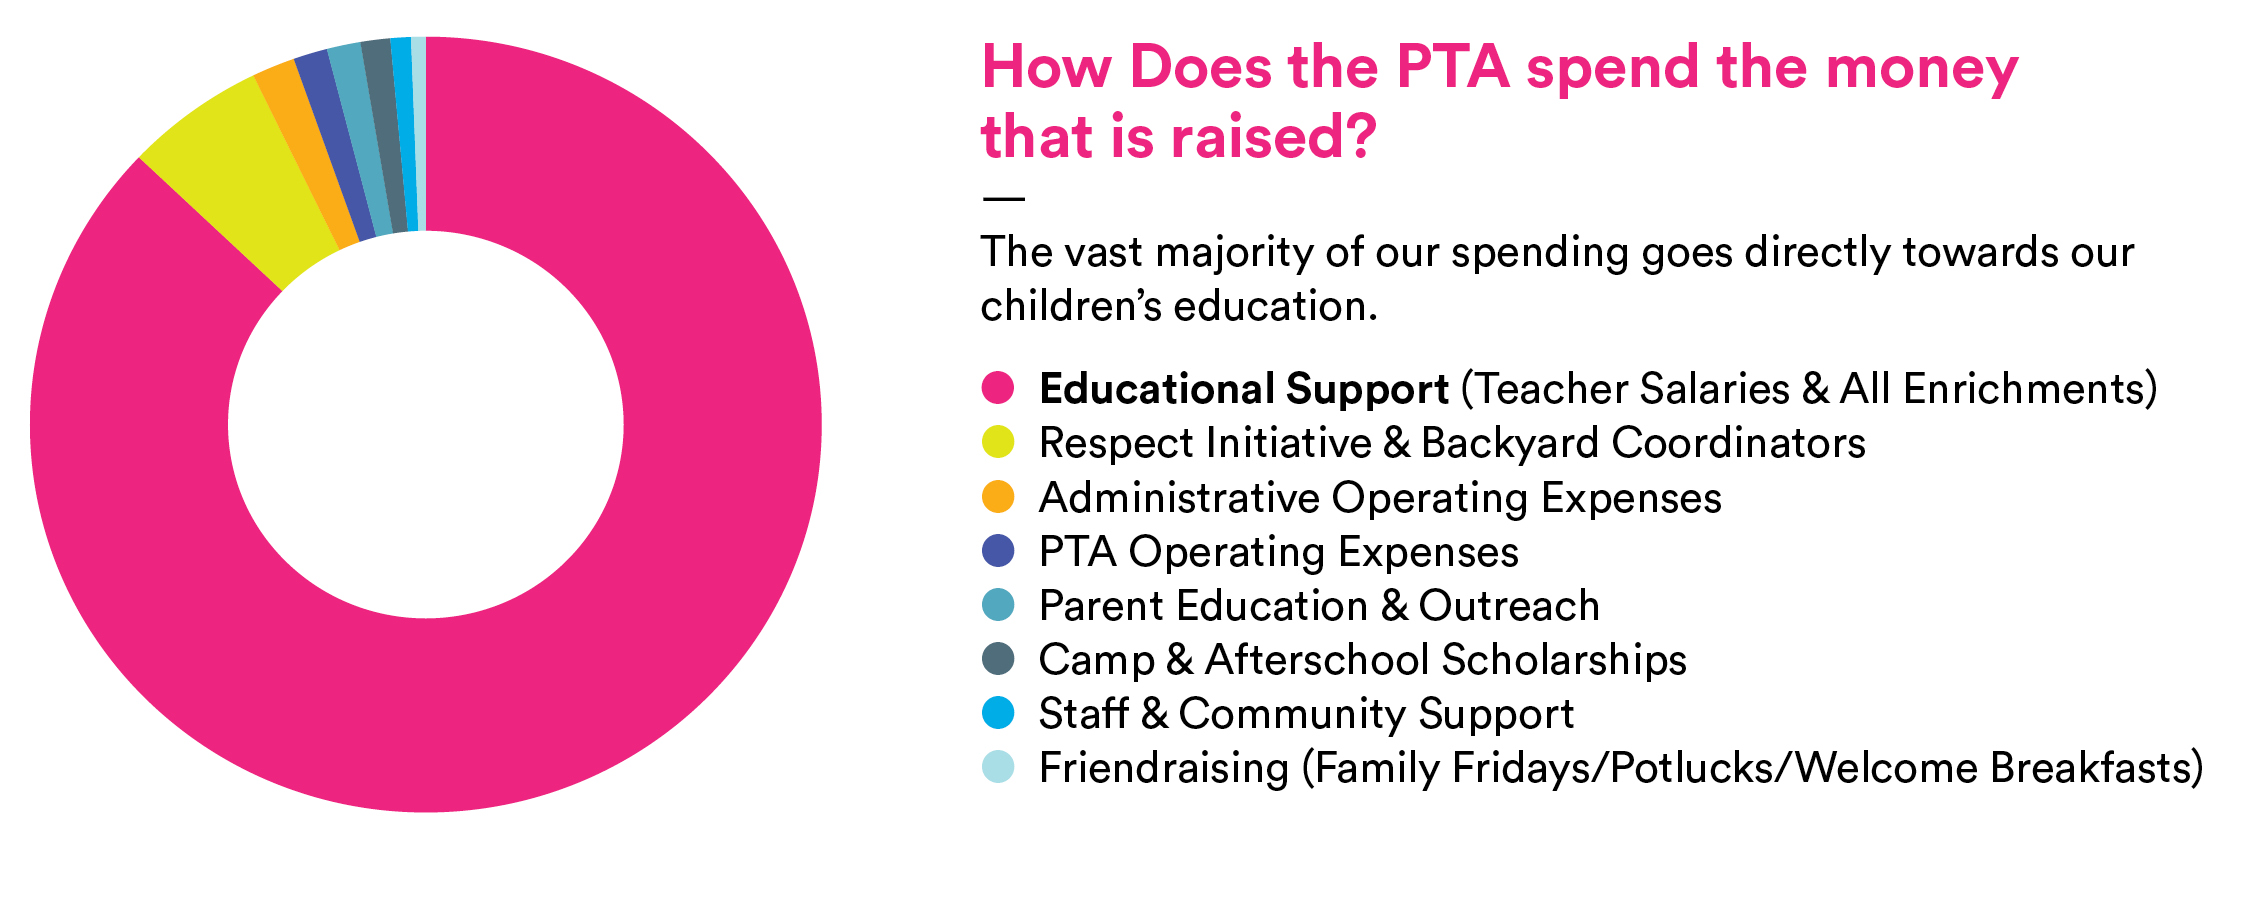 How Does the PTA Spend the Money Raised?